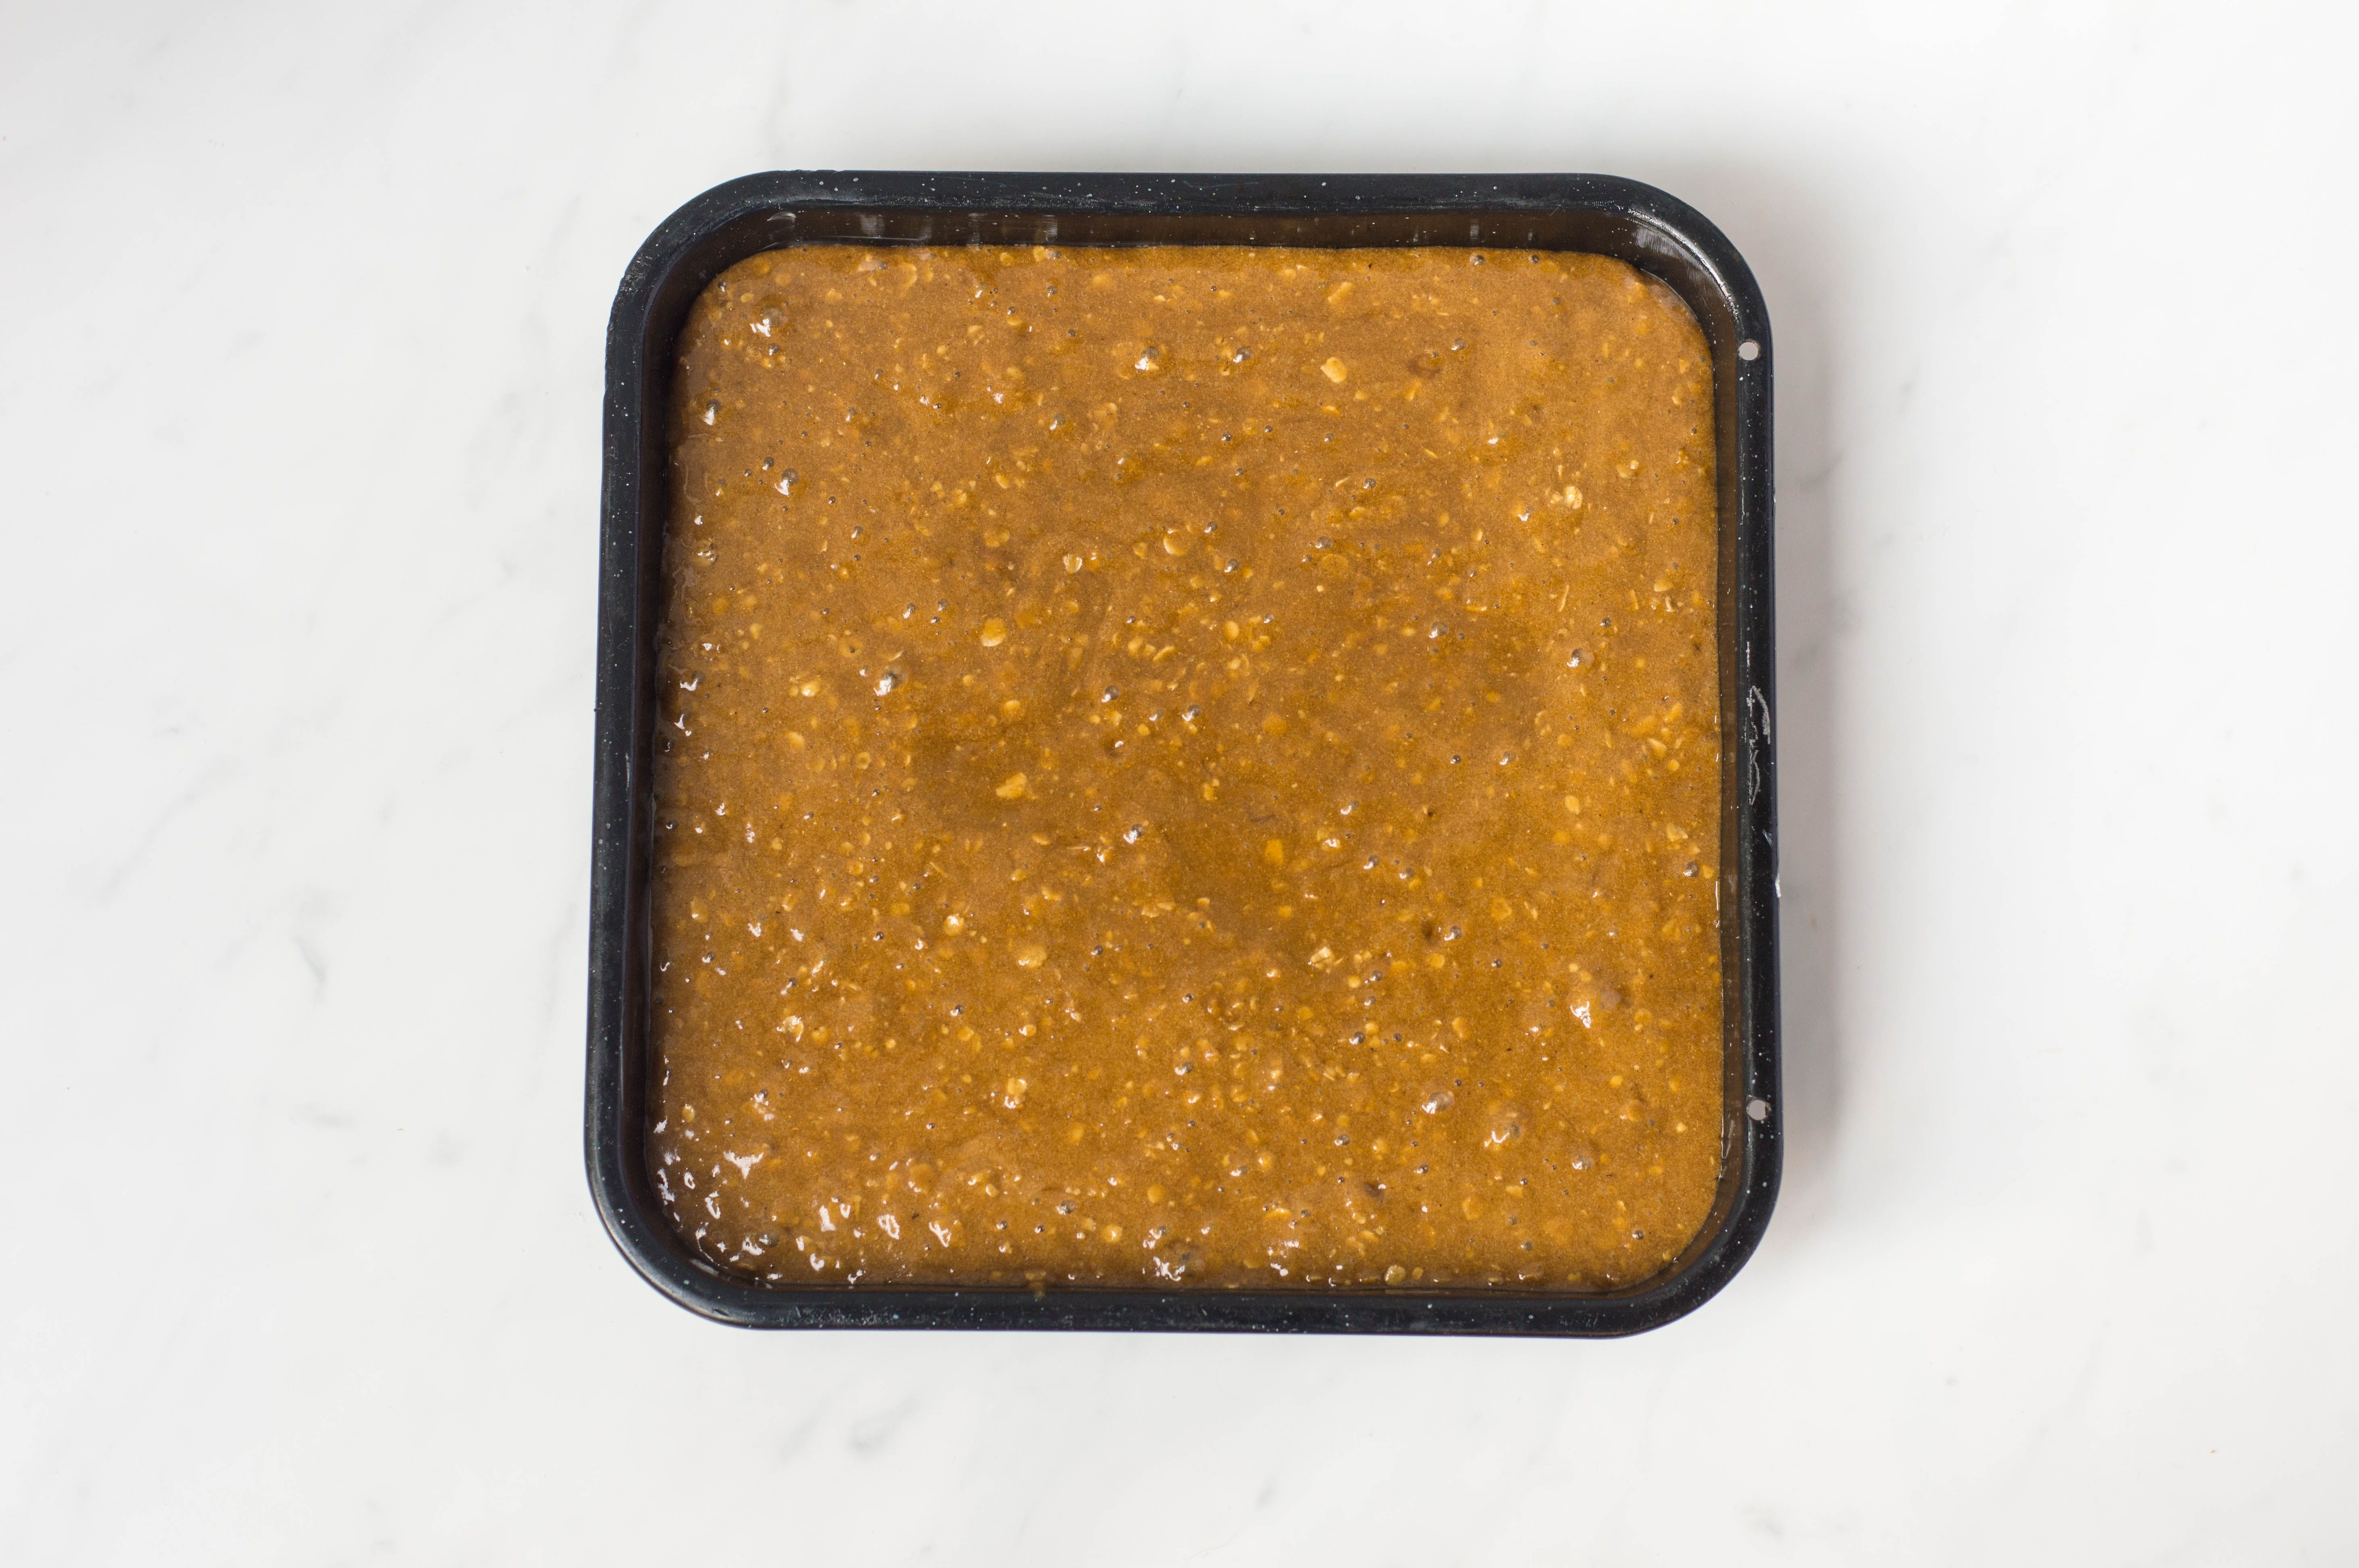 Batter poured into prepared pan